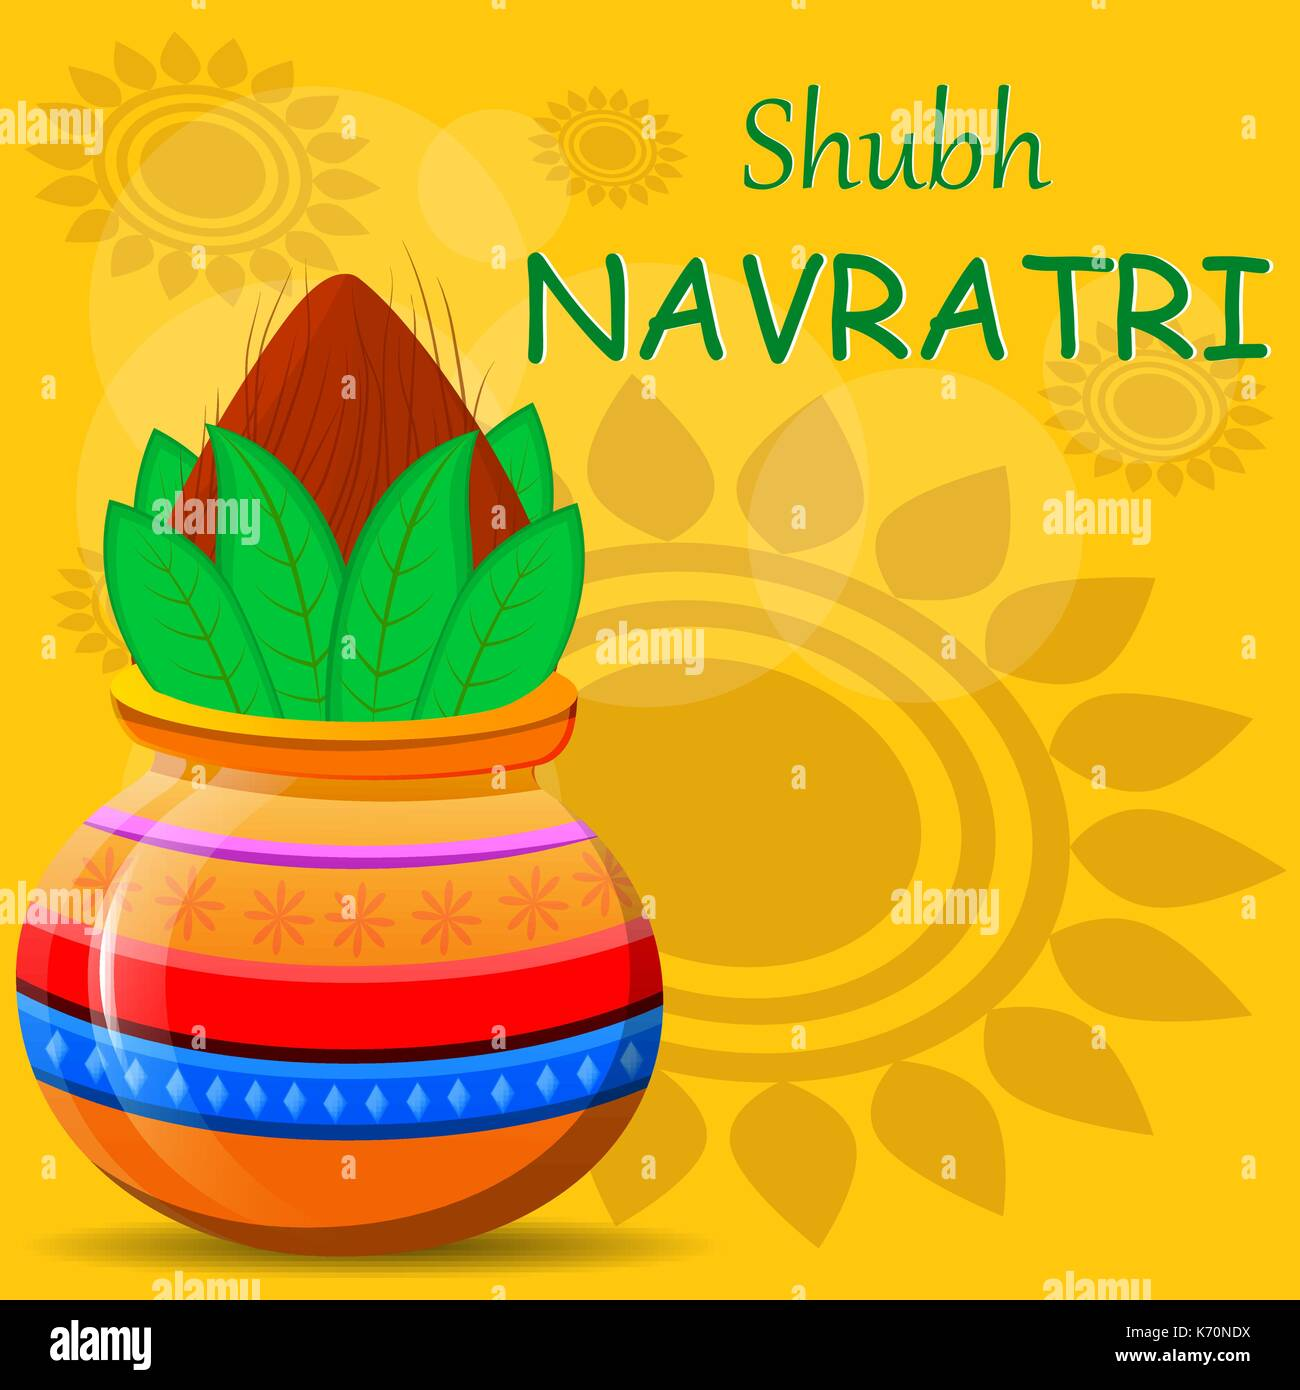 Happy navratri greeting card pot with coconut on beautiful abstract happy navratri greeting card pot with coconut on beautiful abstract background vector illustration for hindu festival kristyandbryce Choice Image